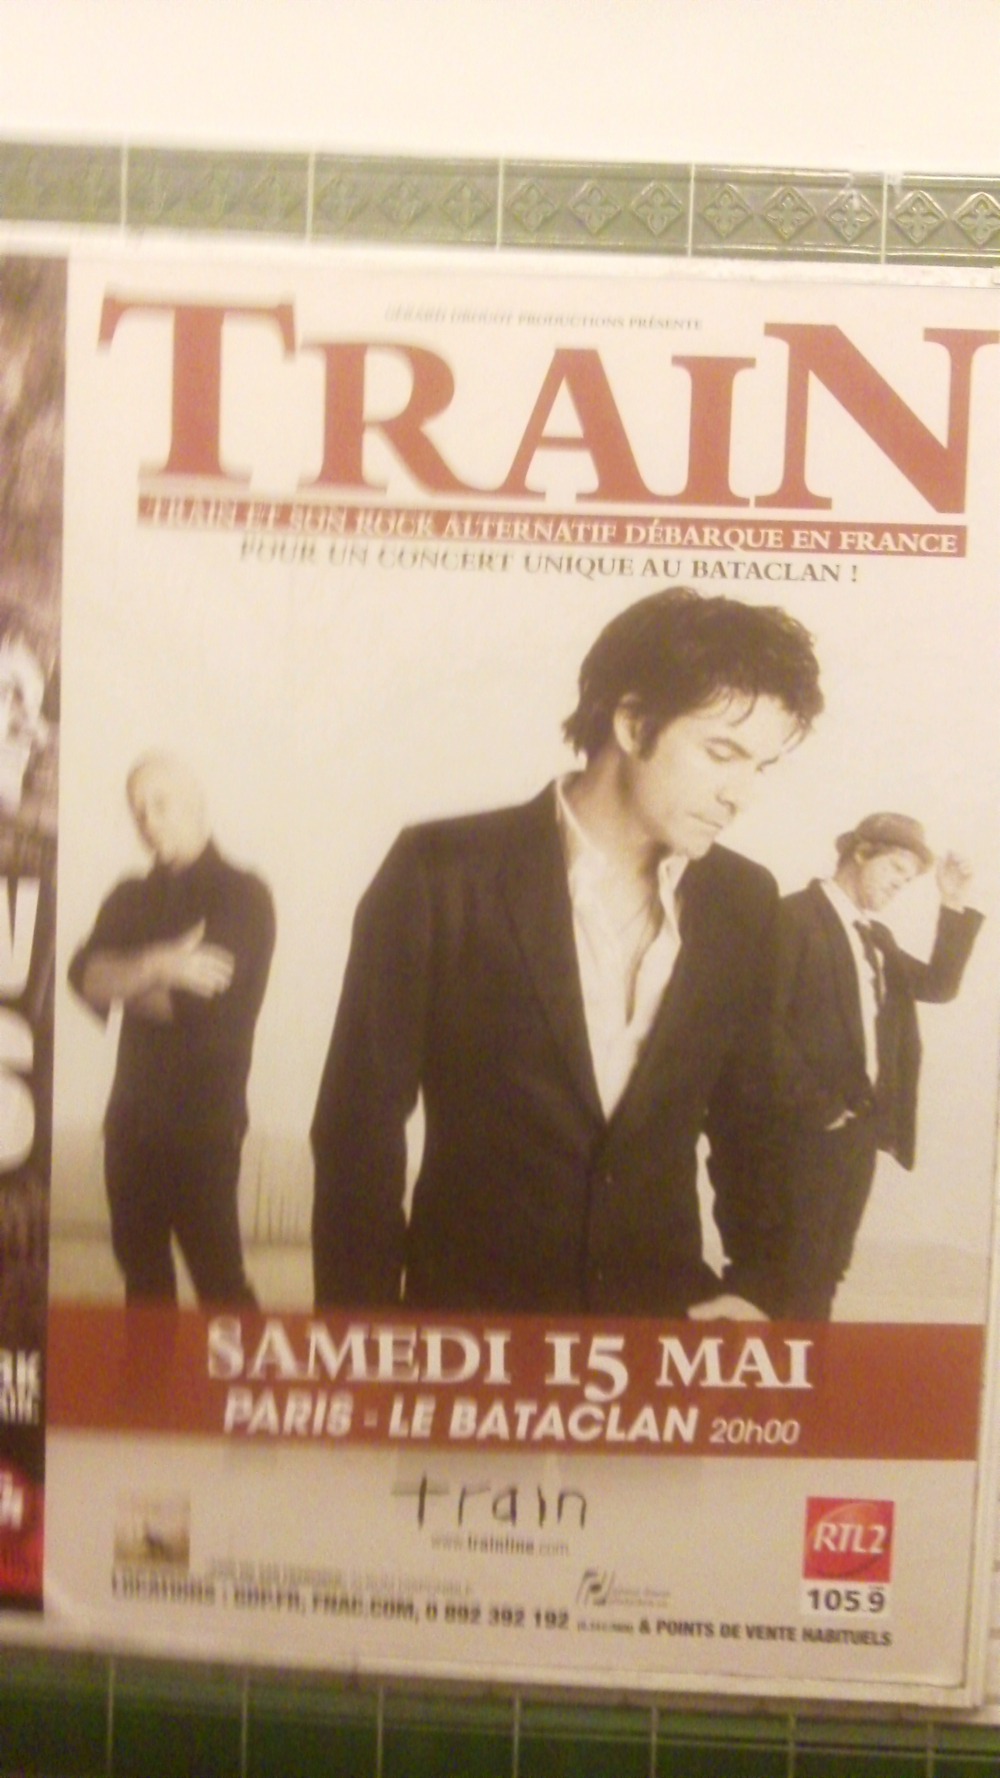 Train in Paris - May 15, 2010